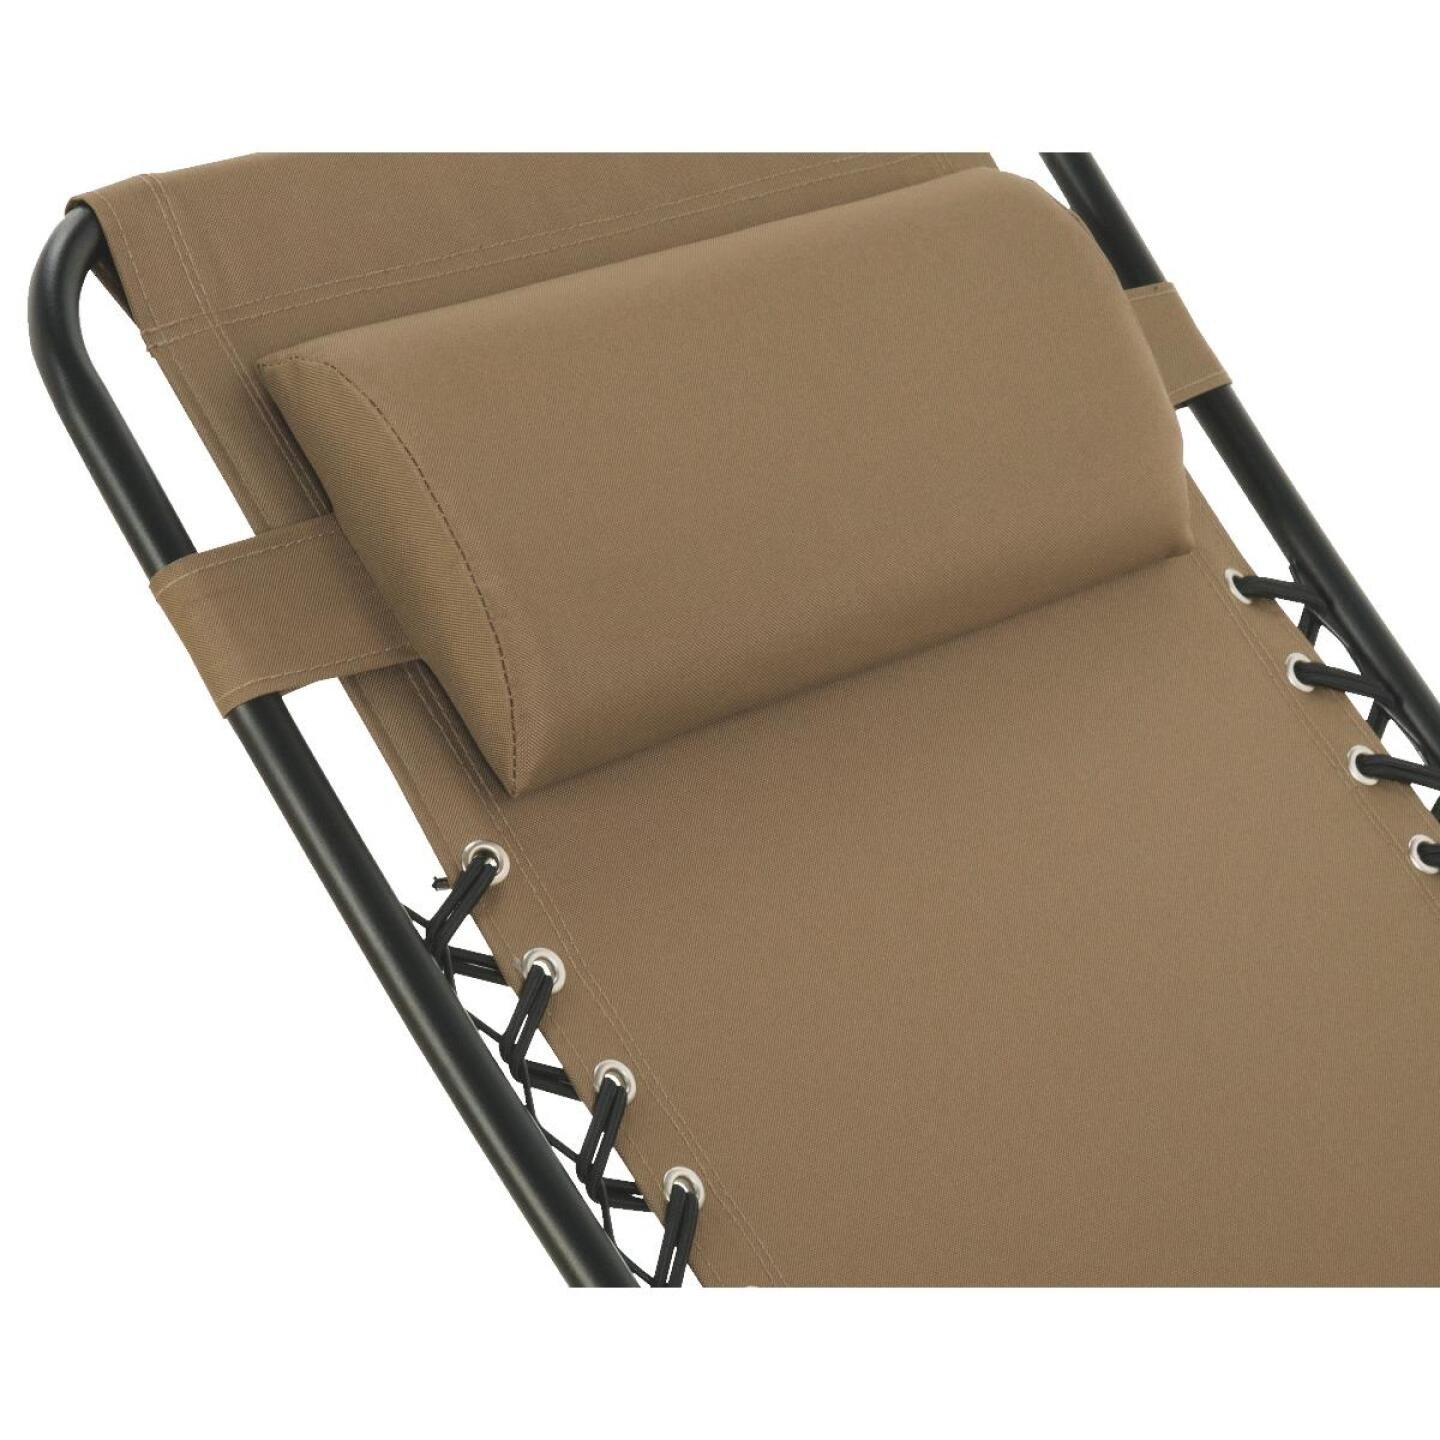 Outdoor Expressions Zero Gravity Relaxer Tan Convertible Lounge Chair Image 7